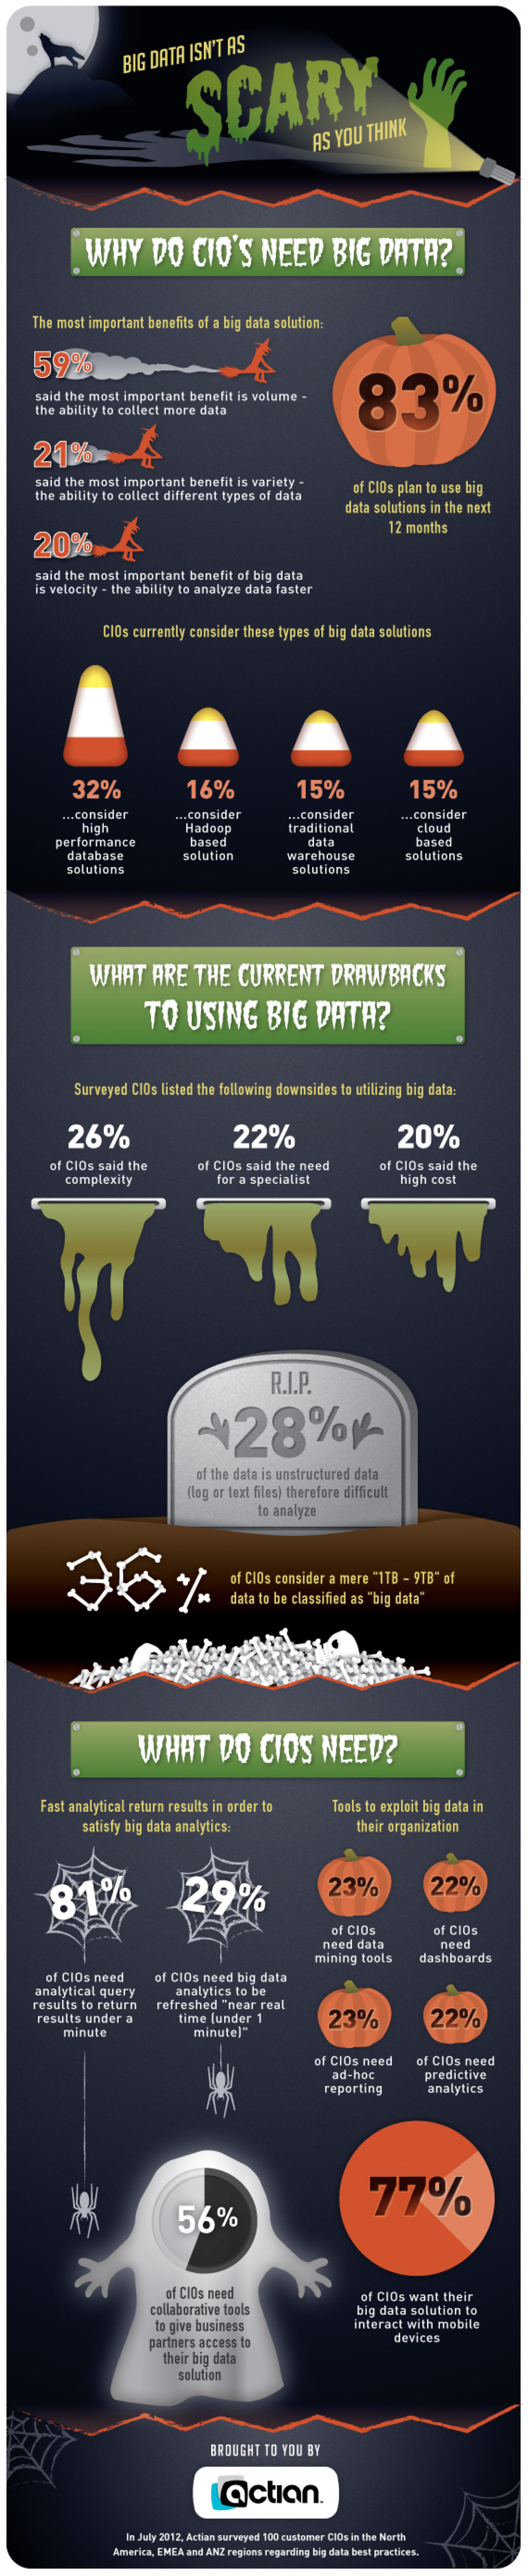 Big Data Isn't As Scary As You Think Infographic